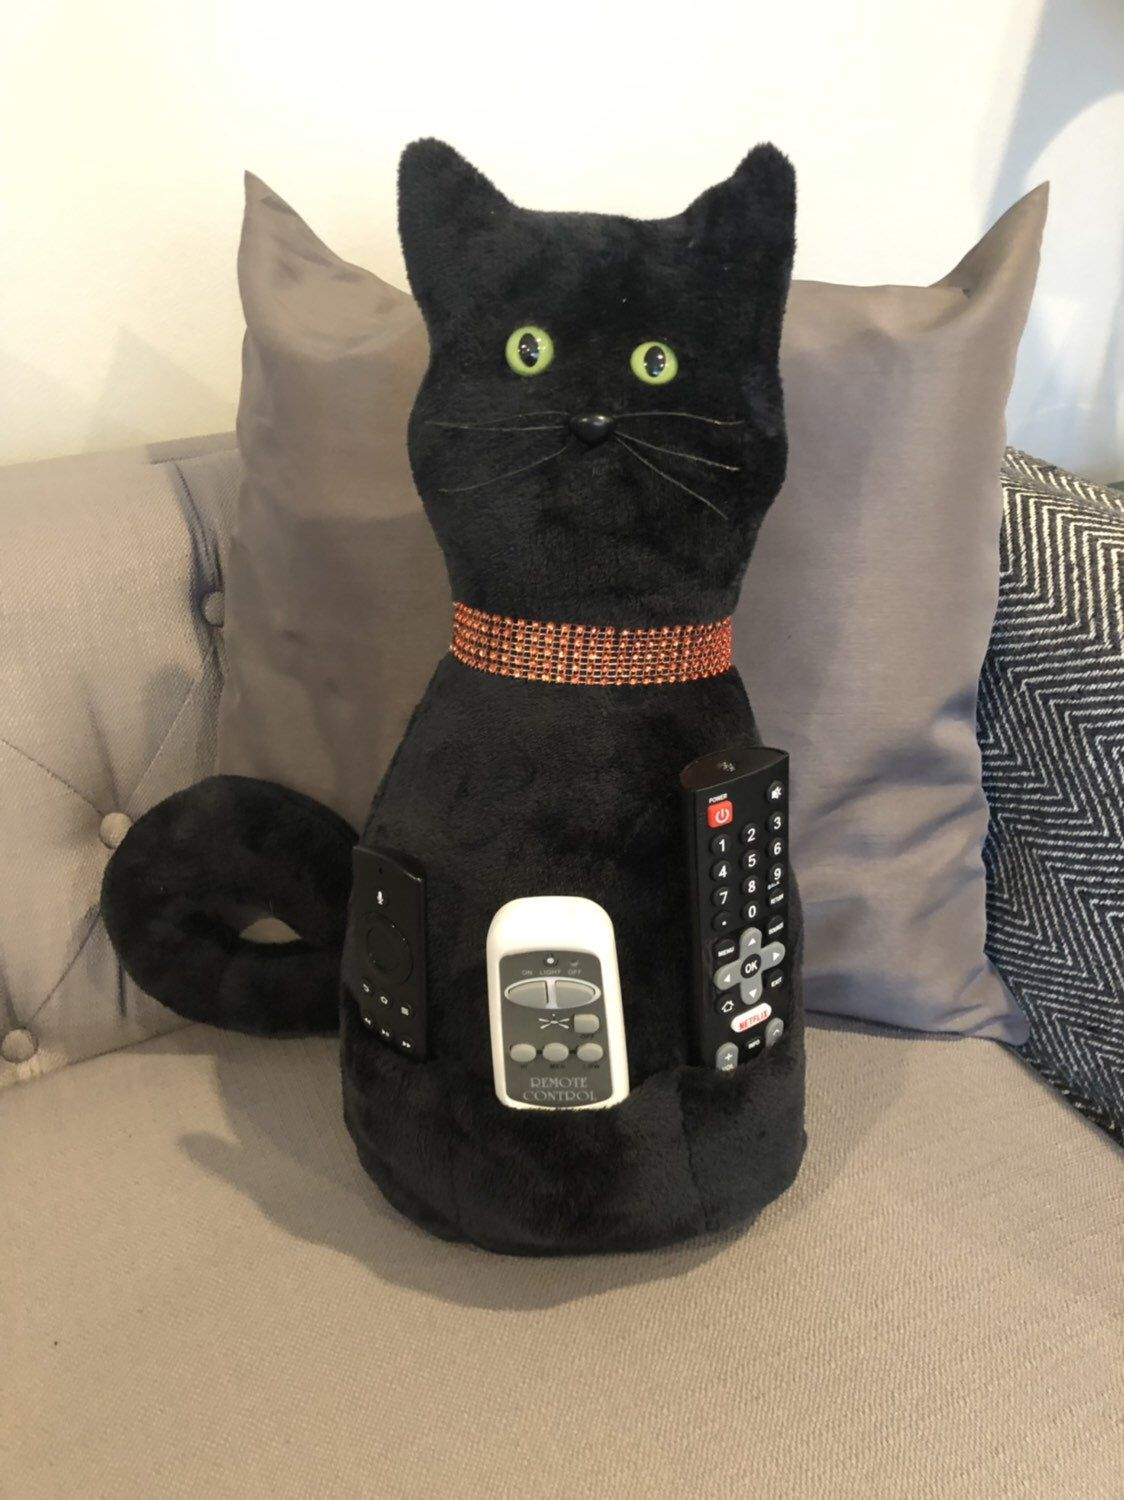 Handmade Black Cat Pillow with pouches to hold remotes